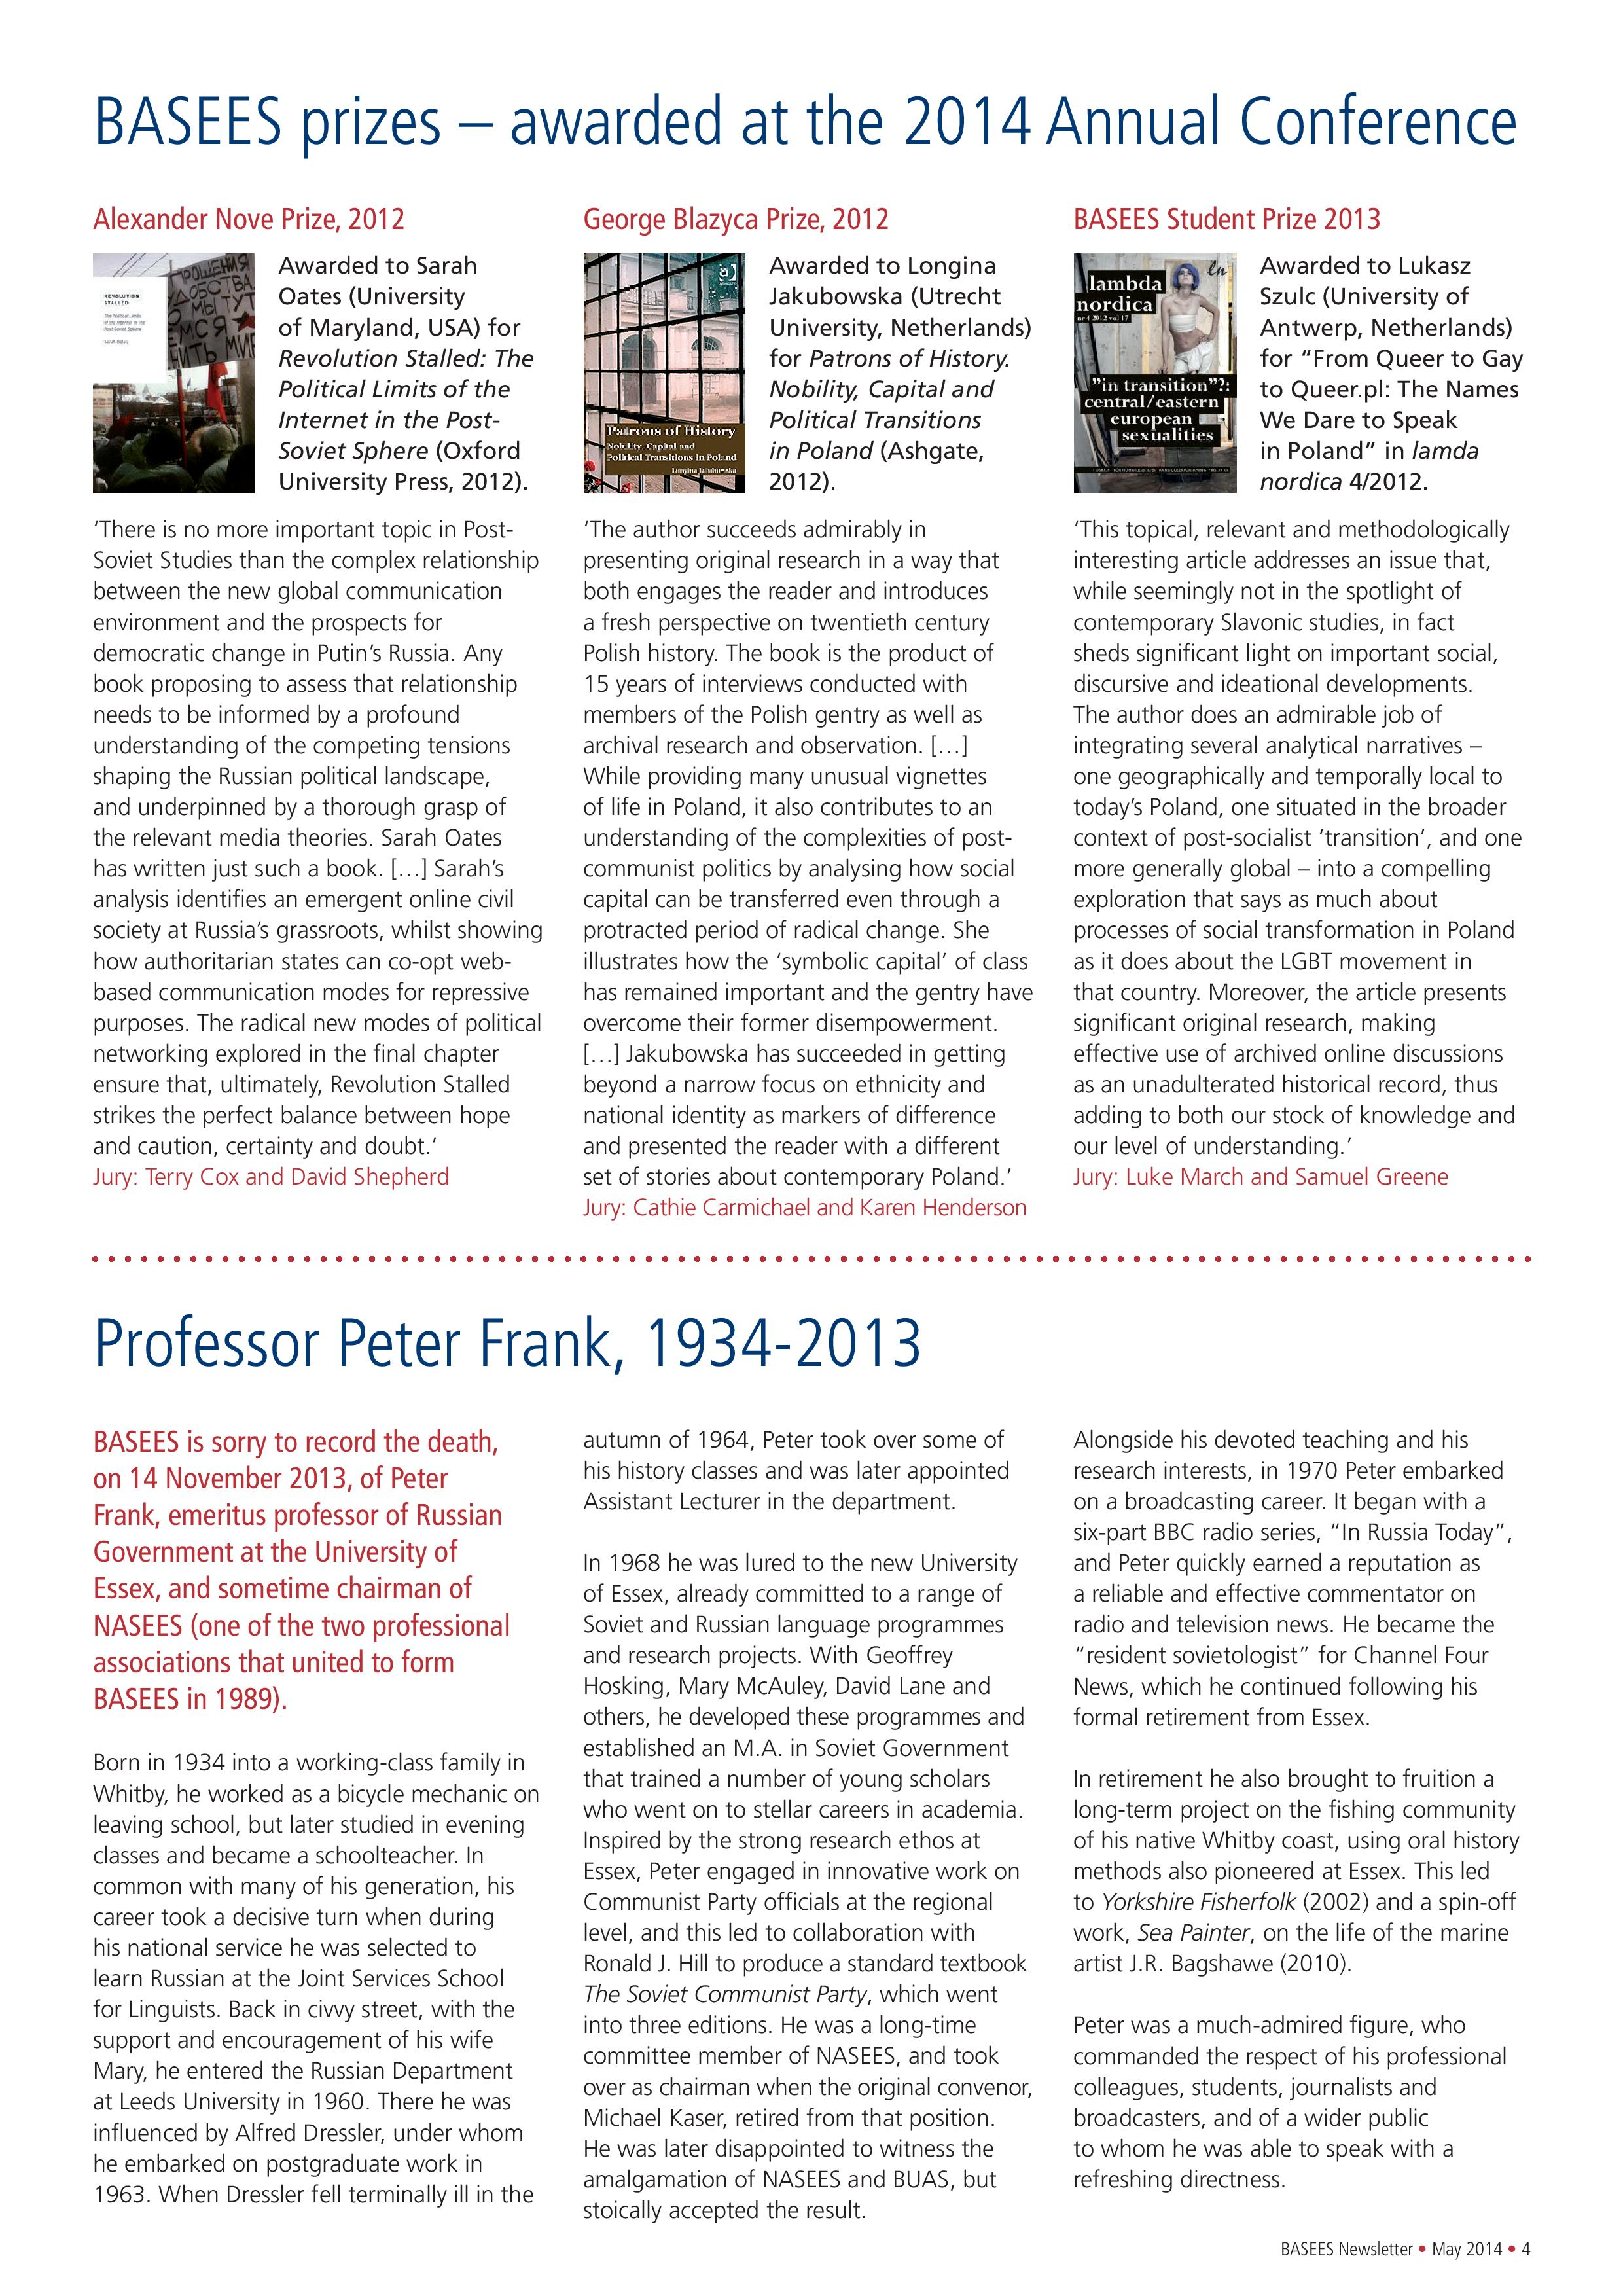 BASEES NewsletterMay 2014-page-004.jpg